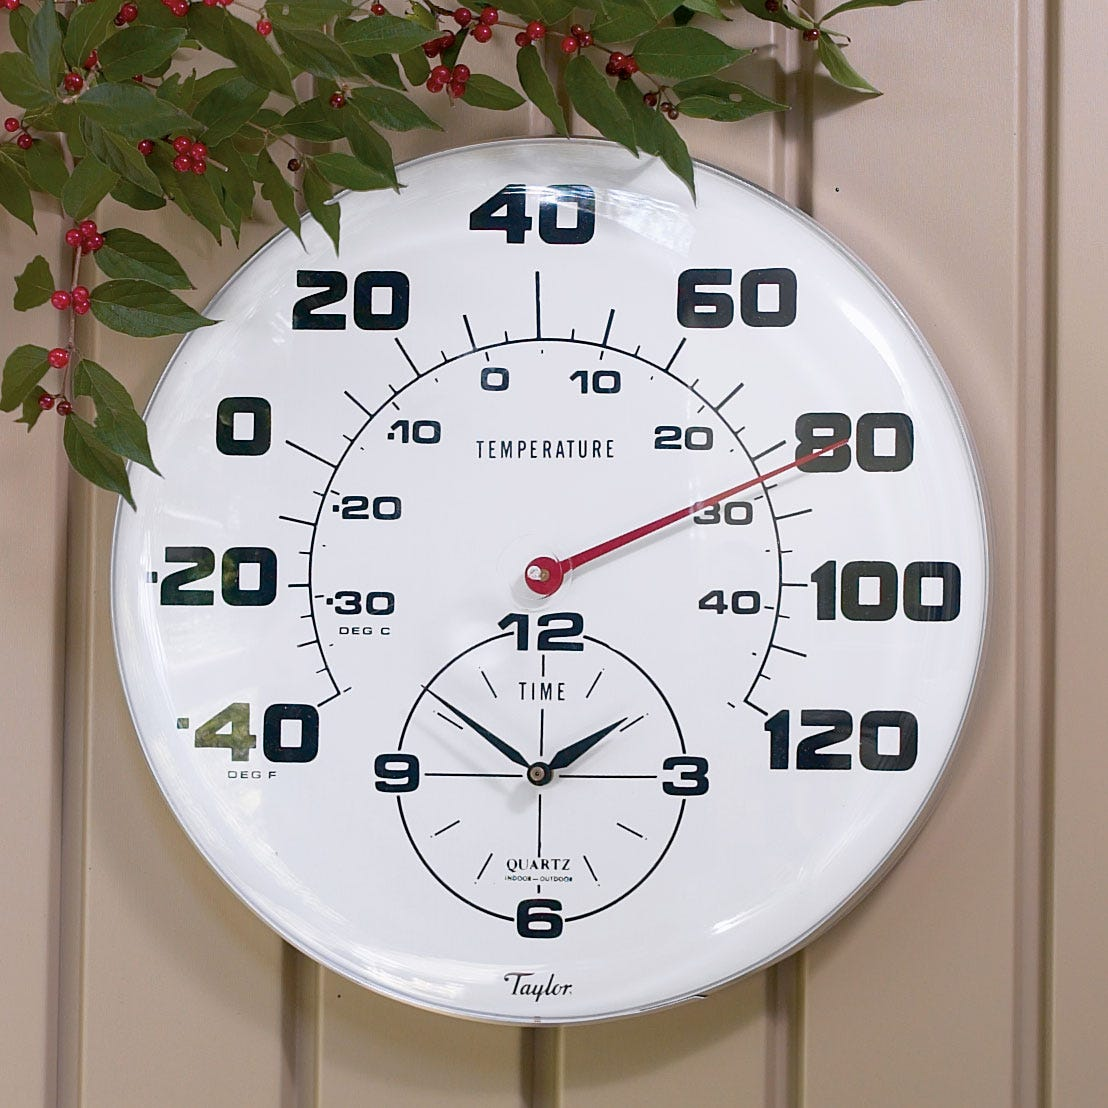 giant outdoor thermometer clock  from sporty's tool shop - more photos